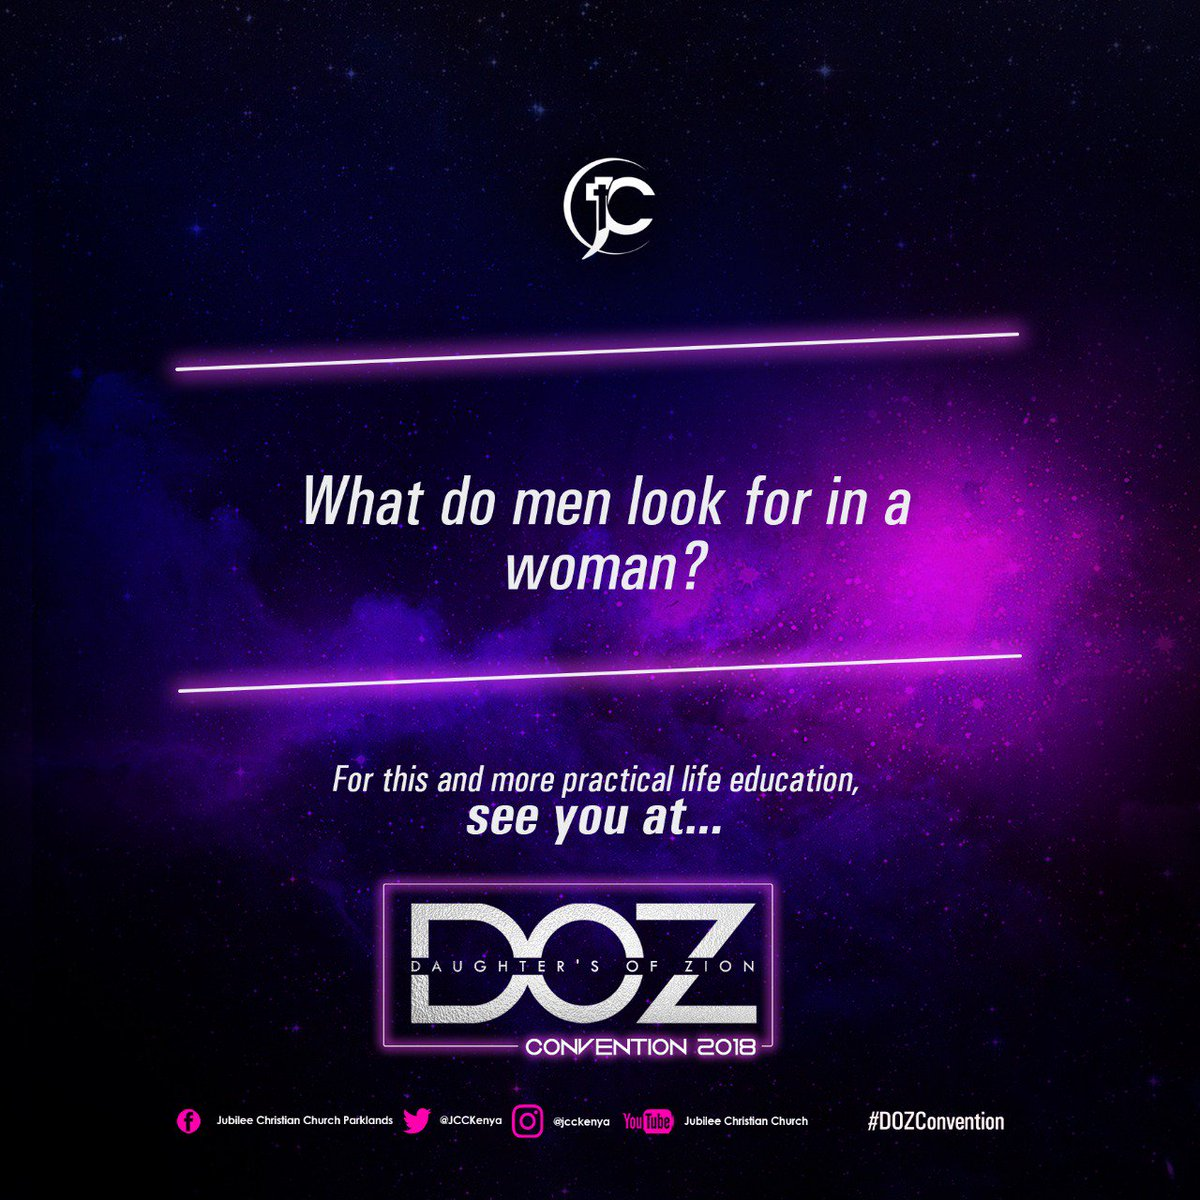 What a woman is looking for in a man